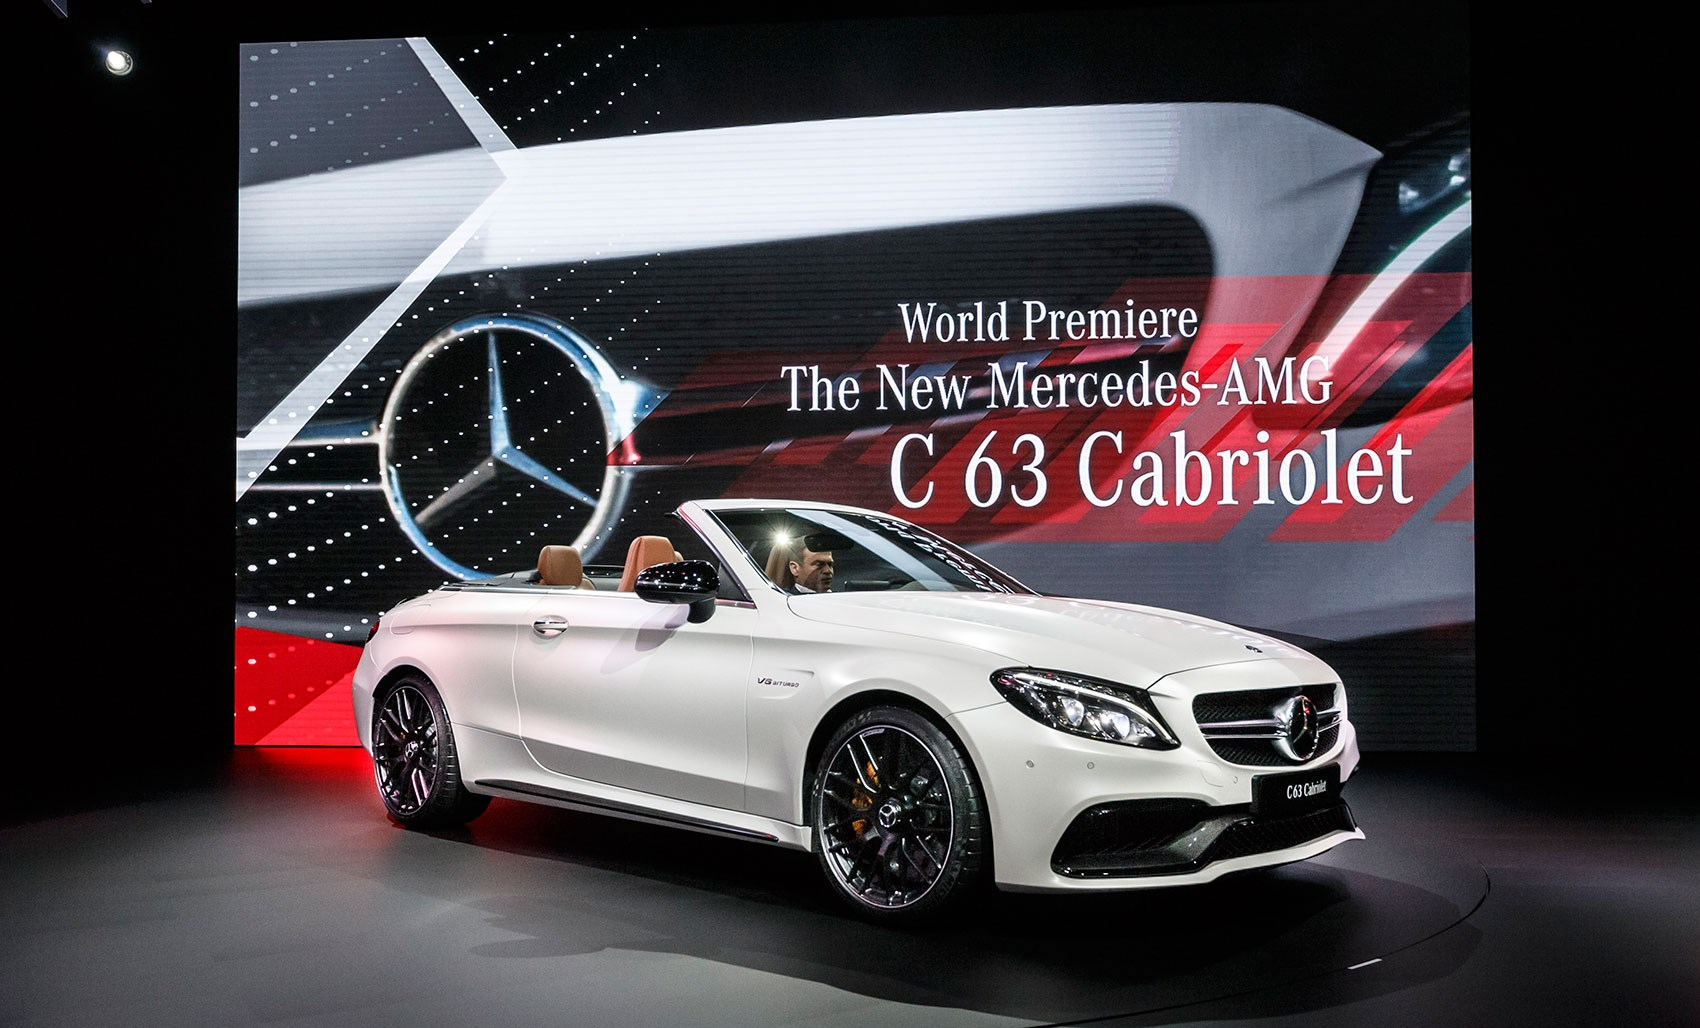 Mercedes amg c63 cabriolet revealed at new york 2016 by for New models of mercedes benz